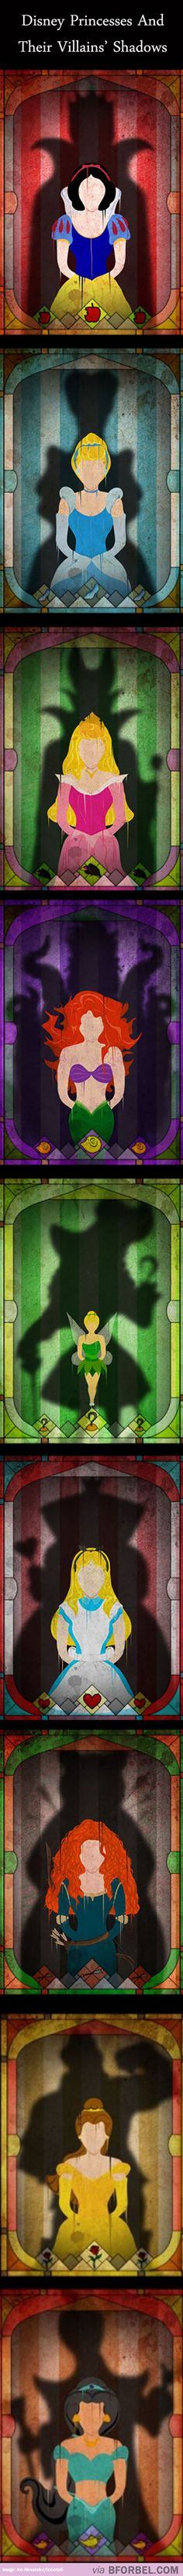 Disney Princesses And Their Villains' Shadows | Les Princesses Disney et les ombres de leurs Villains